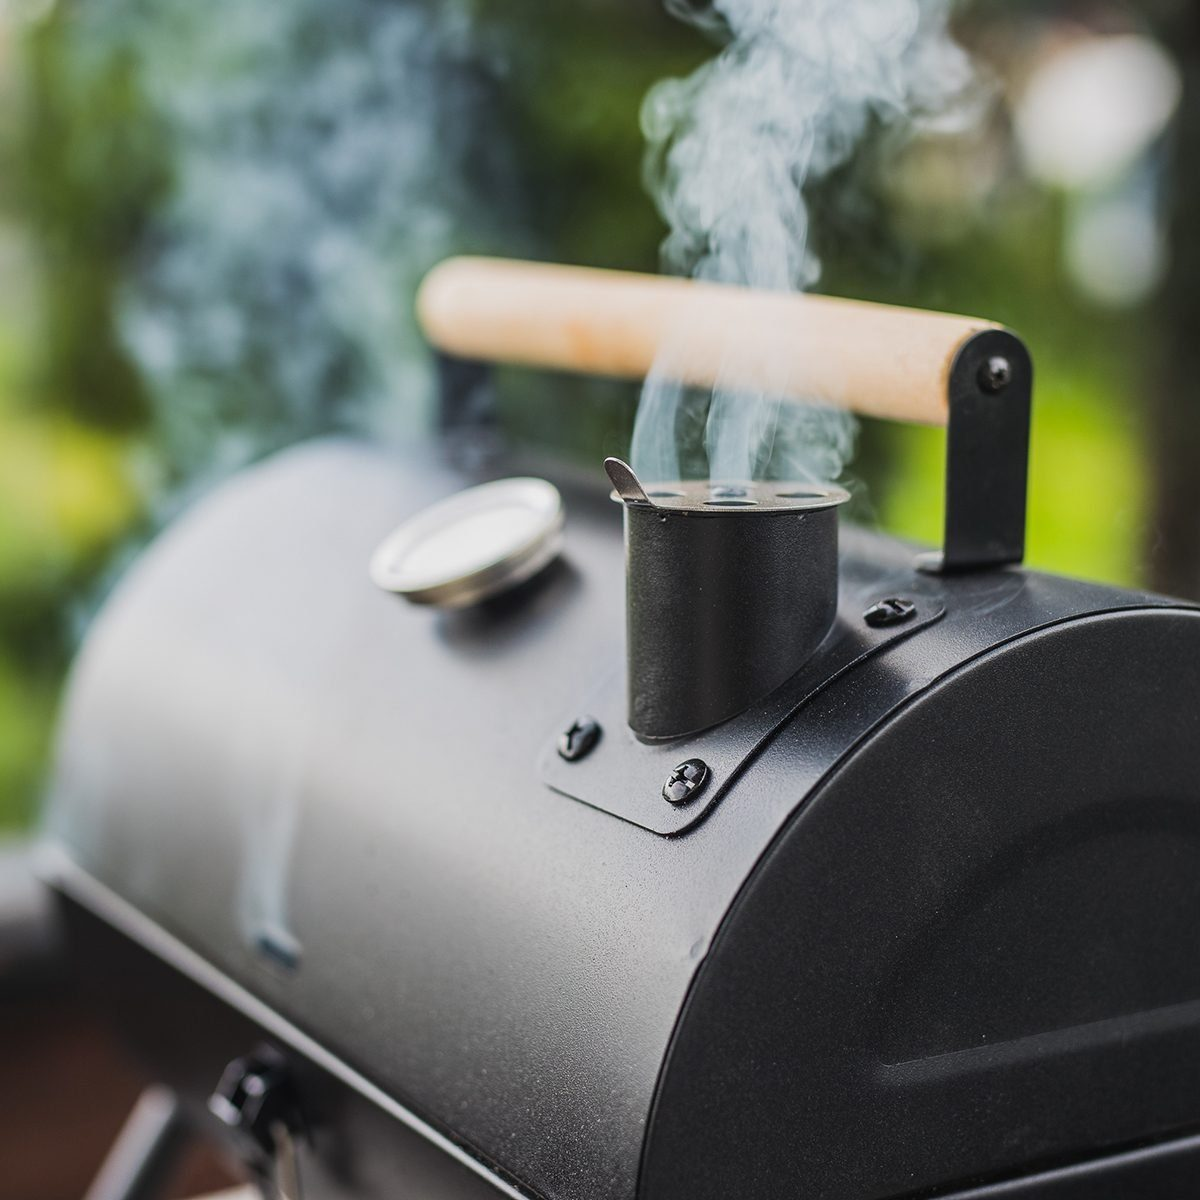 Smoke coming out of a smokestack of a small black smoker grill or barbecue on green background.; Shutterstock ID 1408814591; Job (TFH, TOH, RD, BNB, CWM, CM): TOH